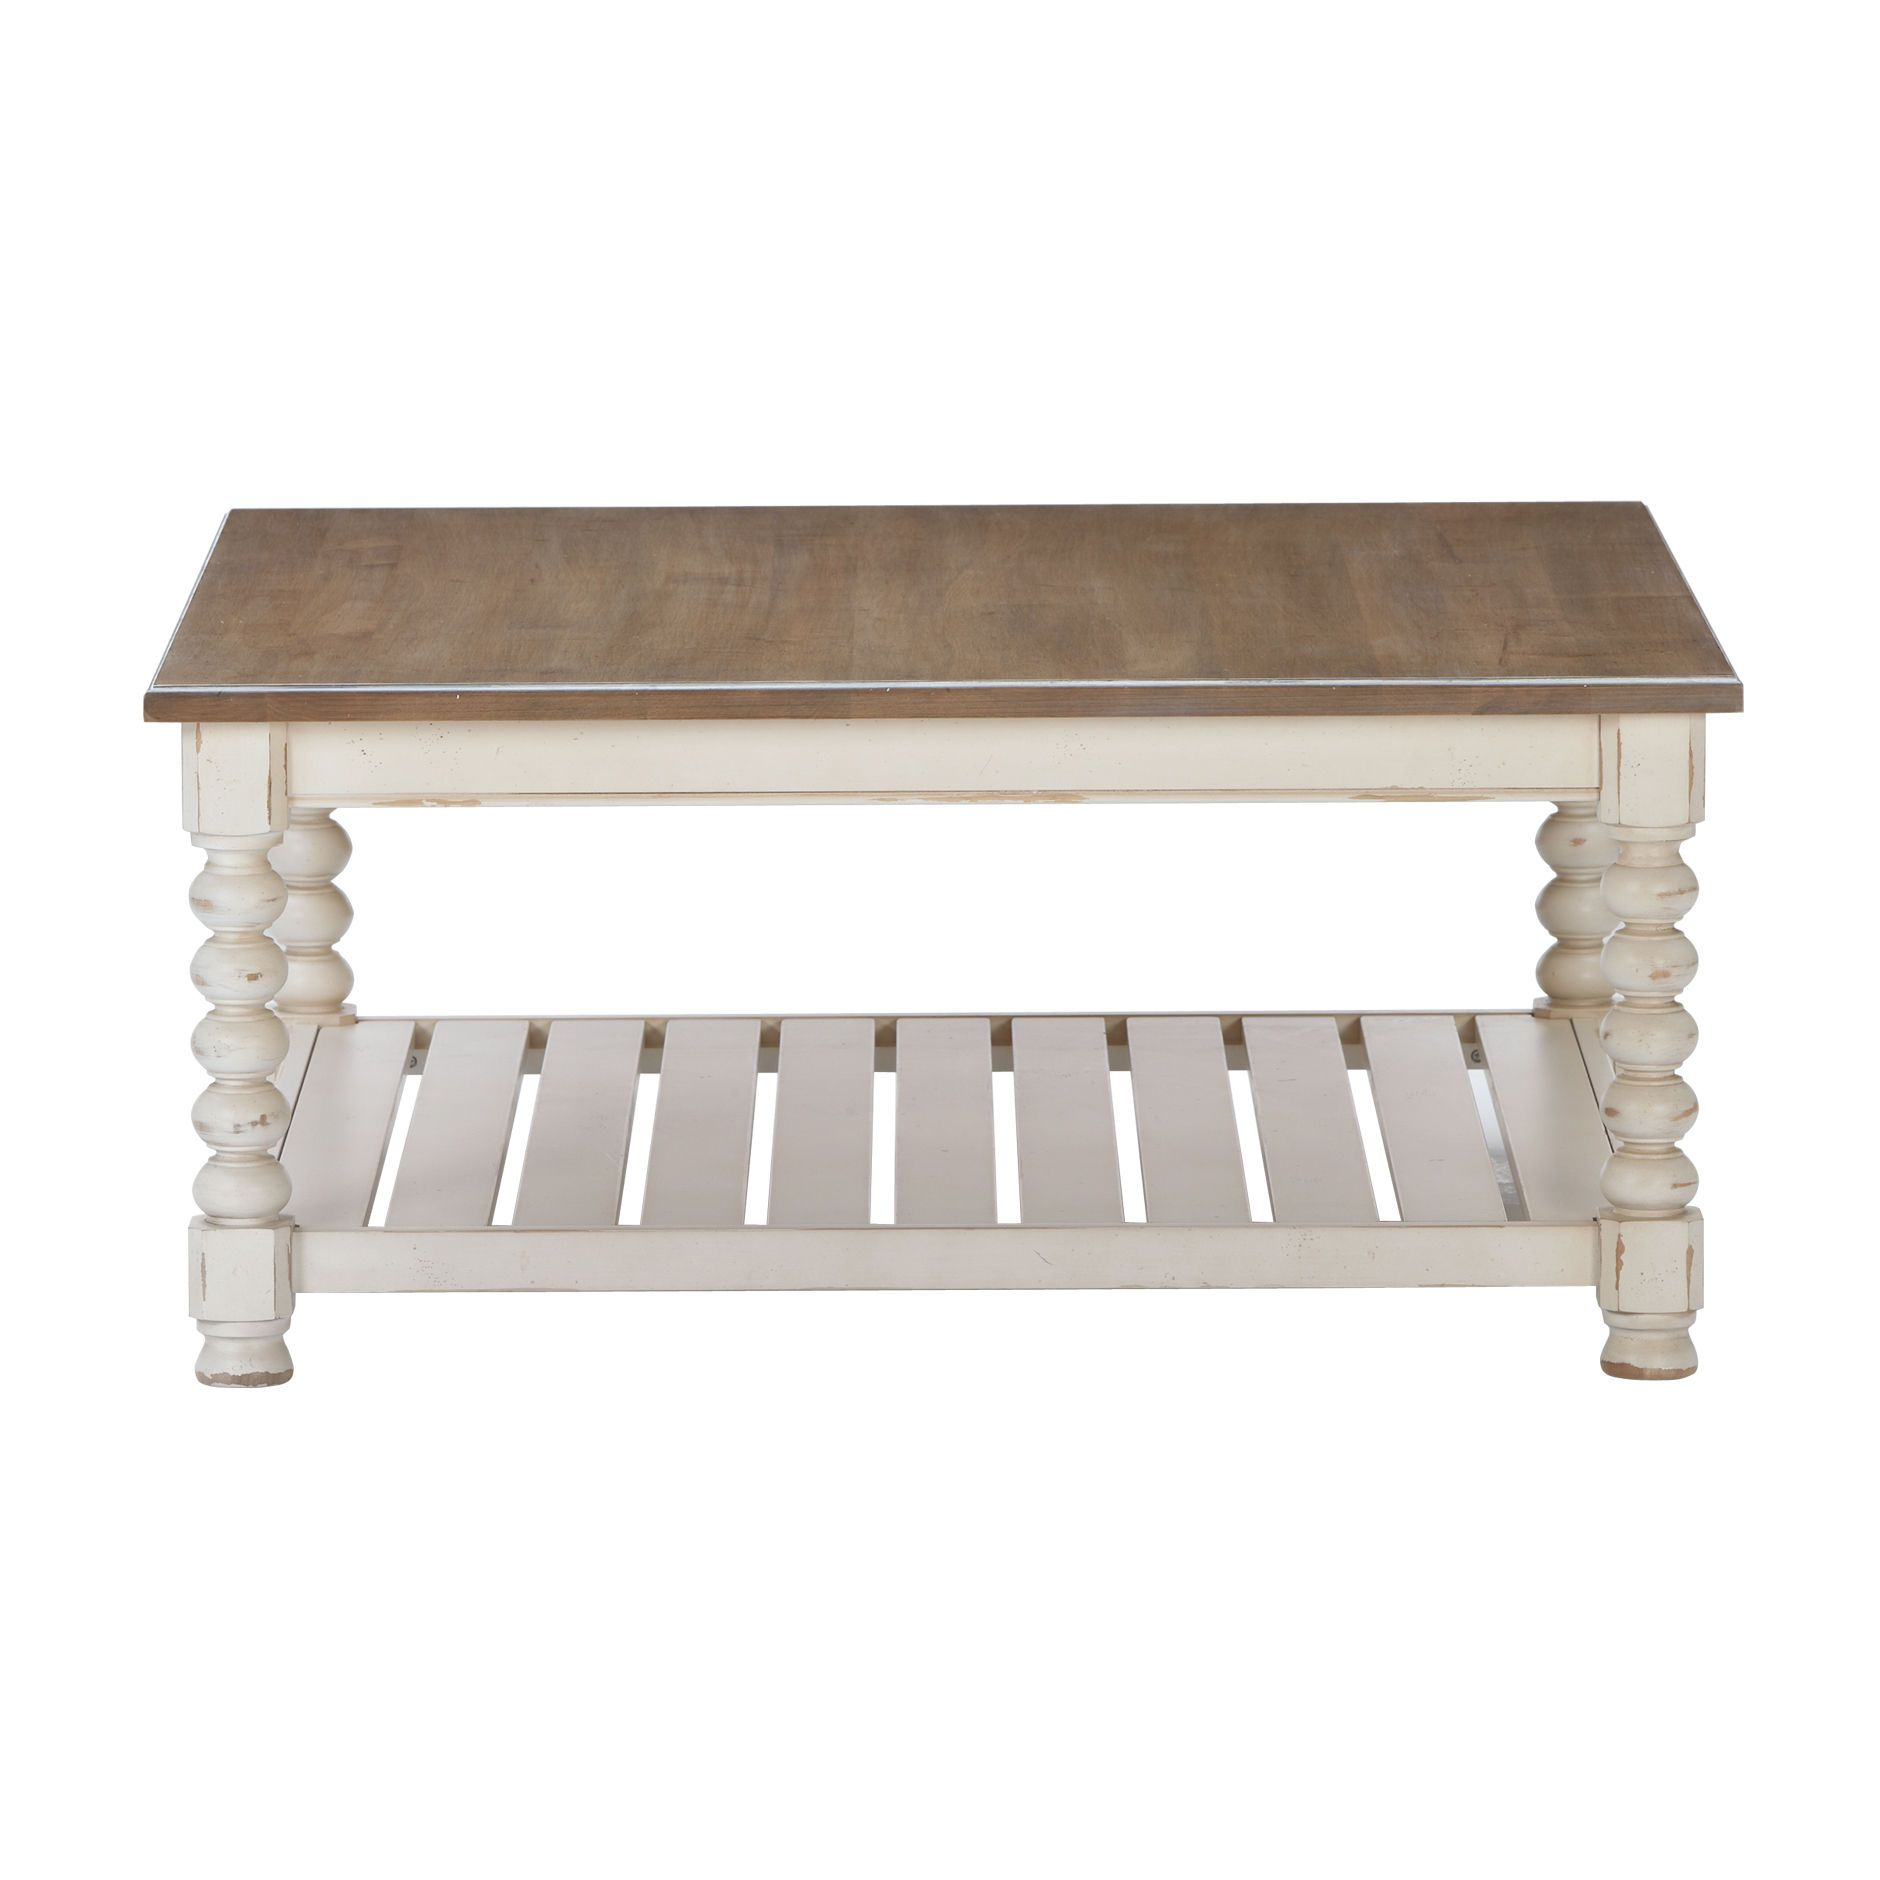 mansfield square coffee table - ethan allen us weathered